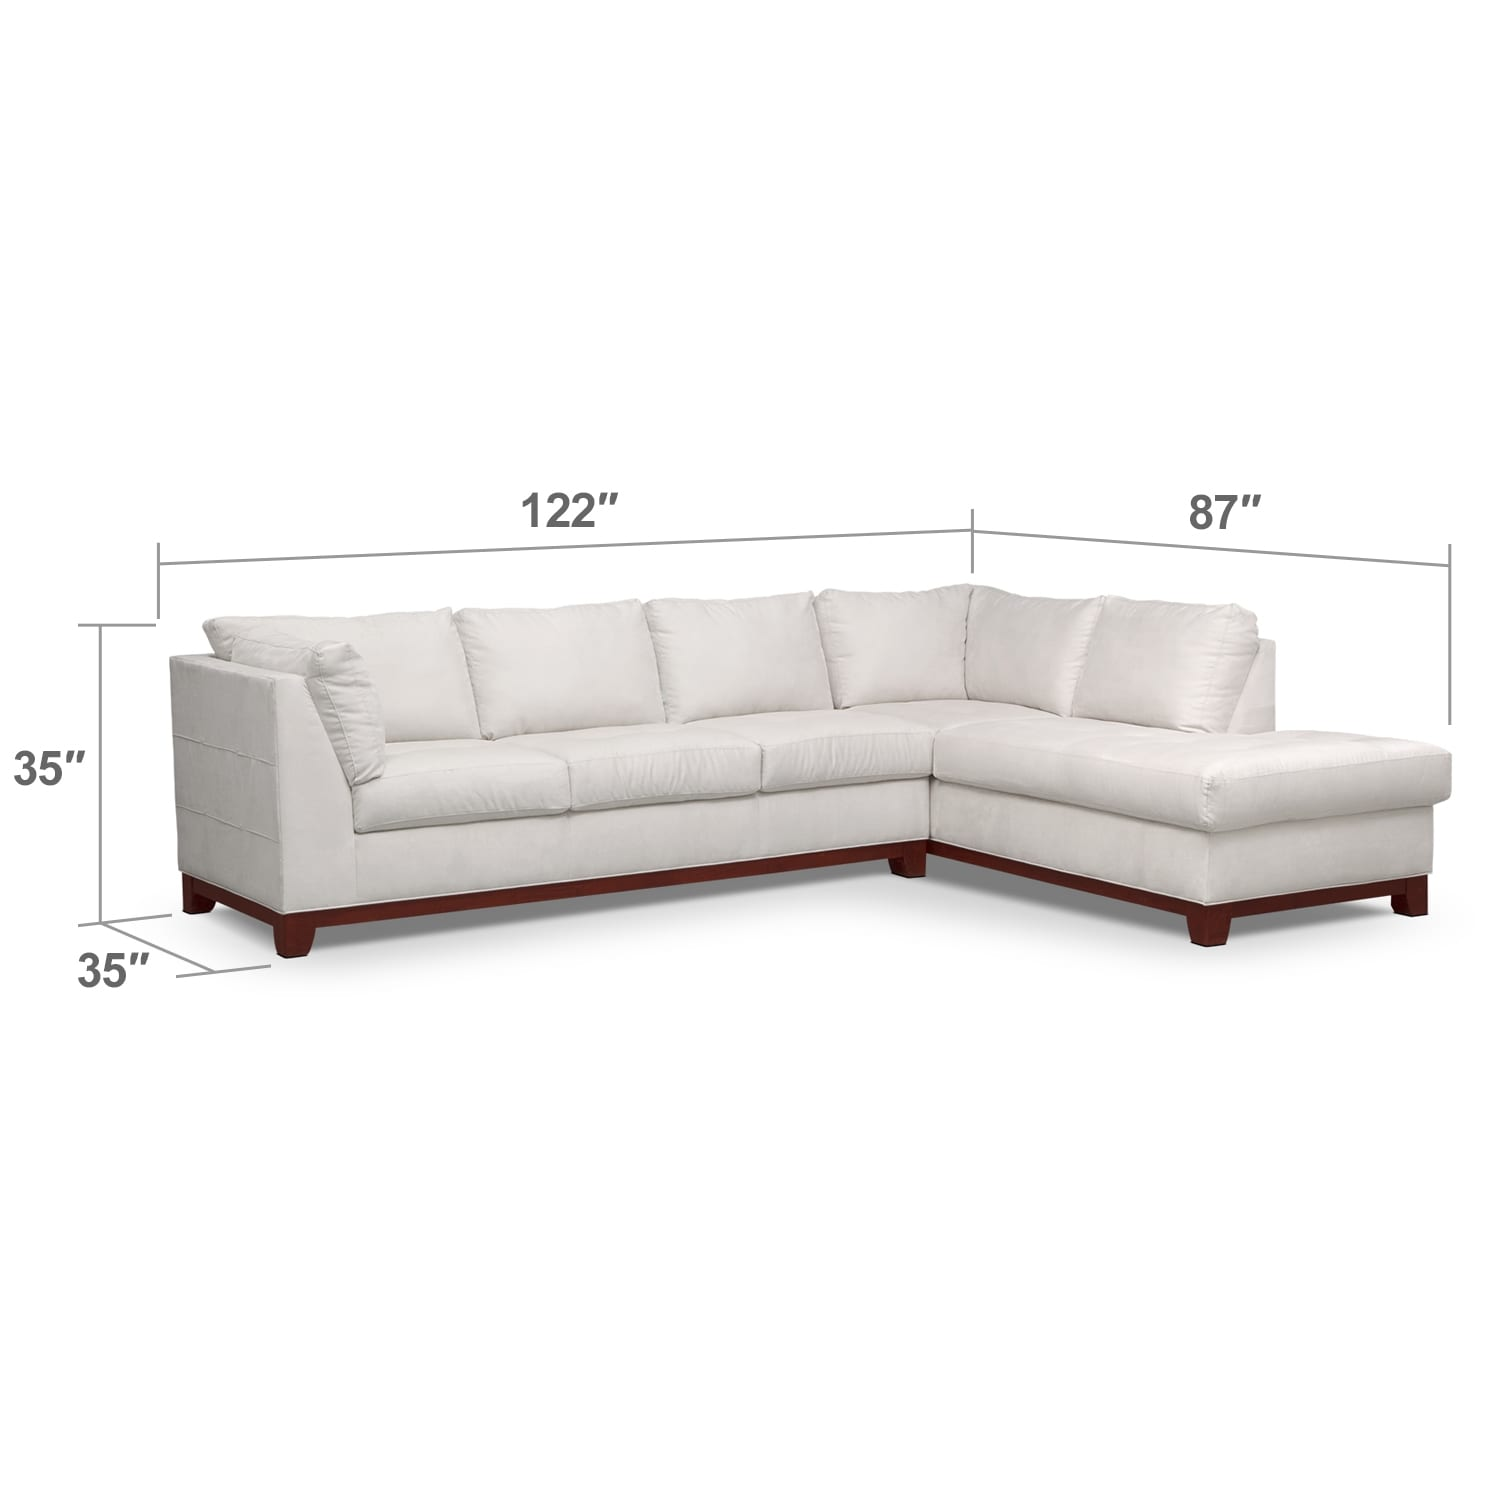 Soho 2 piece sectional with right facing chaise cement for American signature furniture commercial chaise